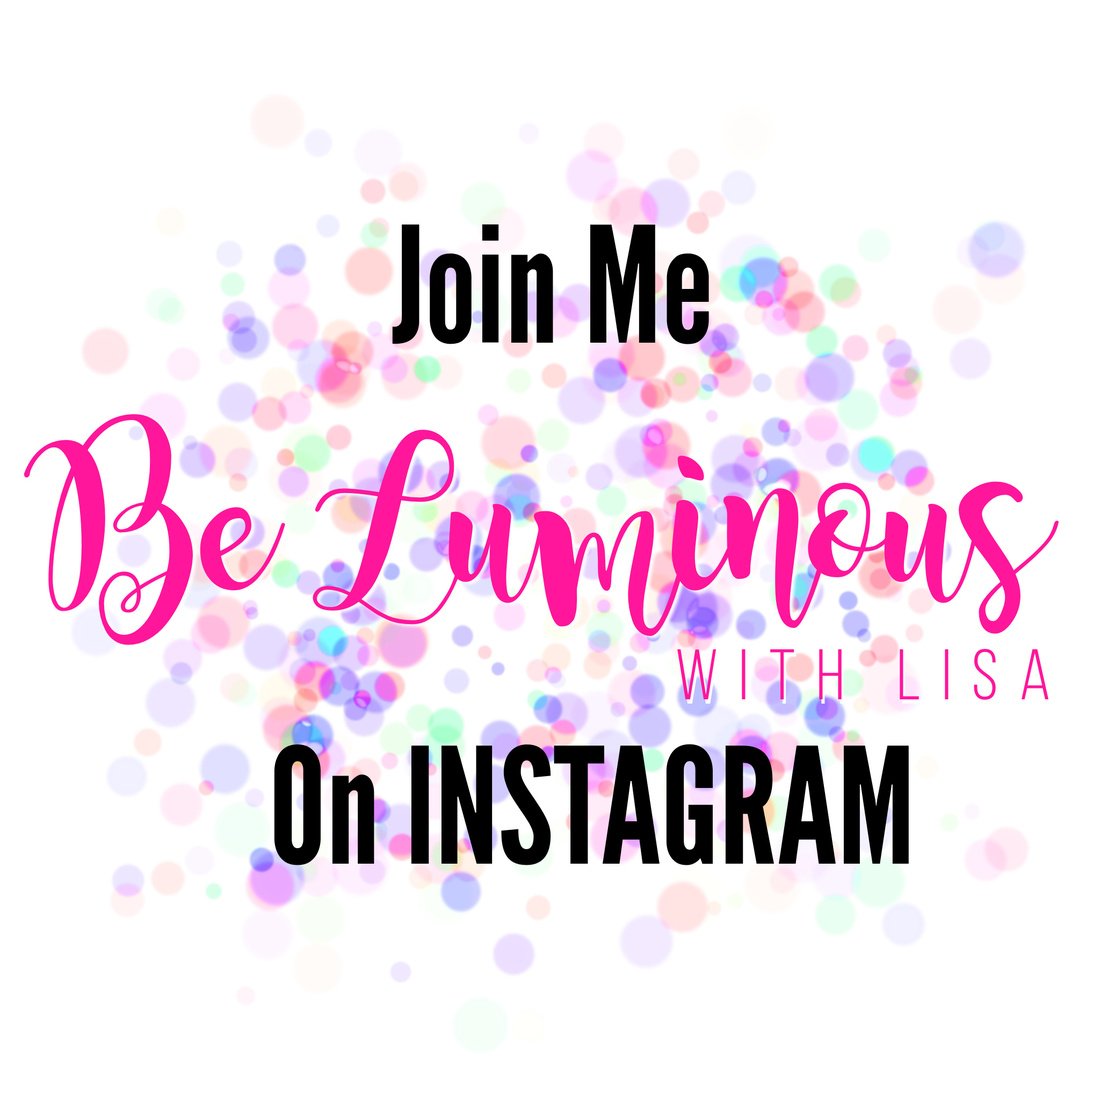 London Ontario Canada, Origami Owl, Join Origami Owl January 2021, London Ontario, Origami Owl, Limited Edition, Join Be Luminous With Lisa Instagram